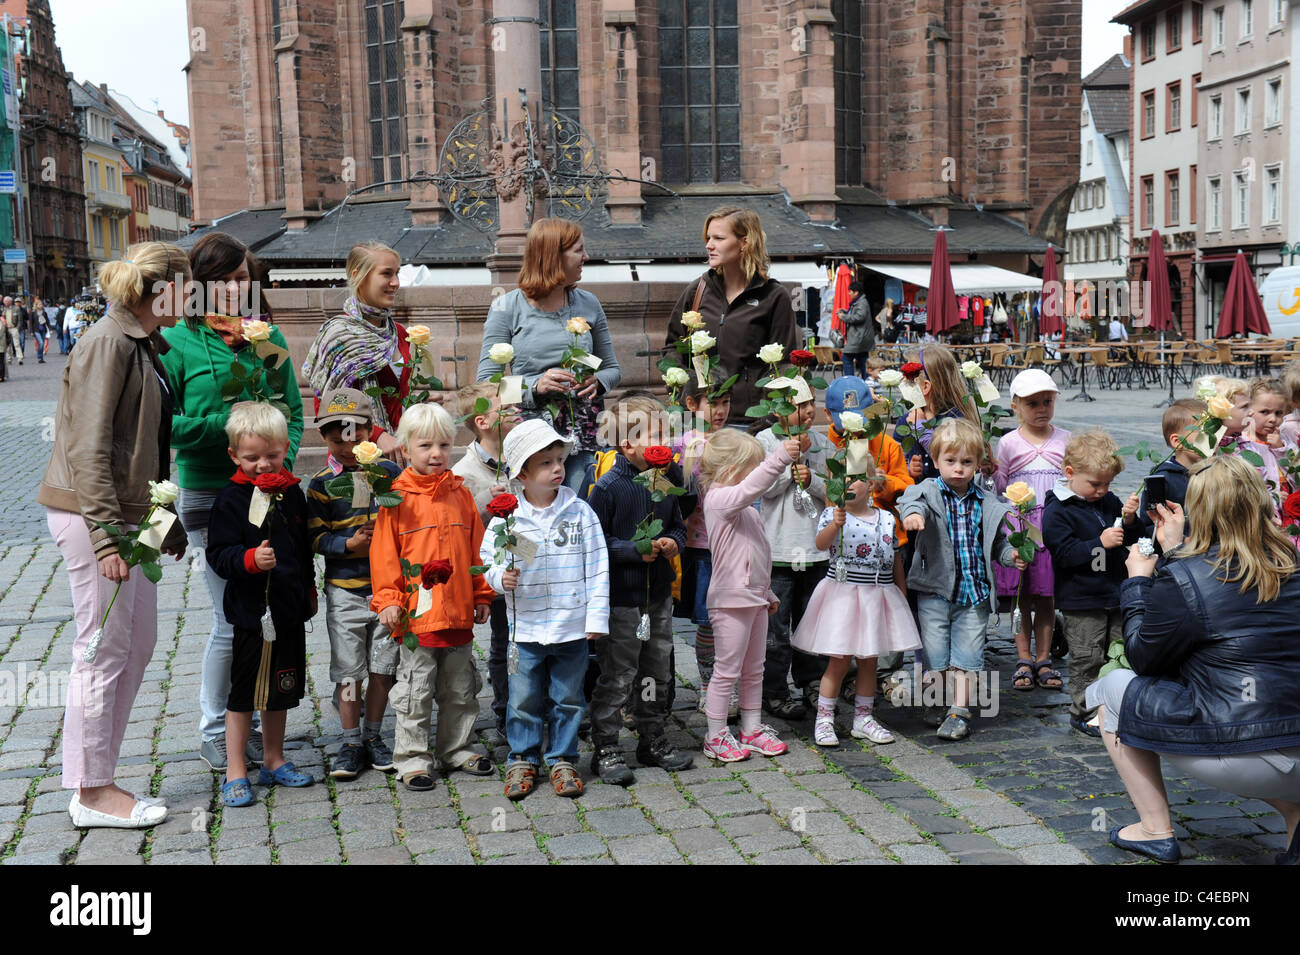 Nursery School children waiting to present roses at wedding Heidelberg Baden-Württemberg Germany Deutschland - Stock Image